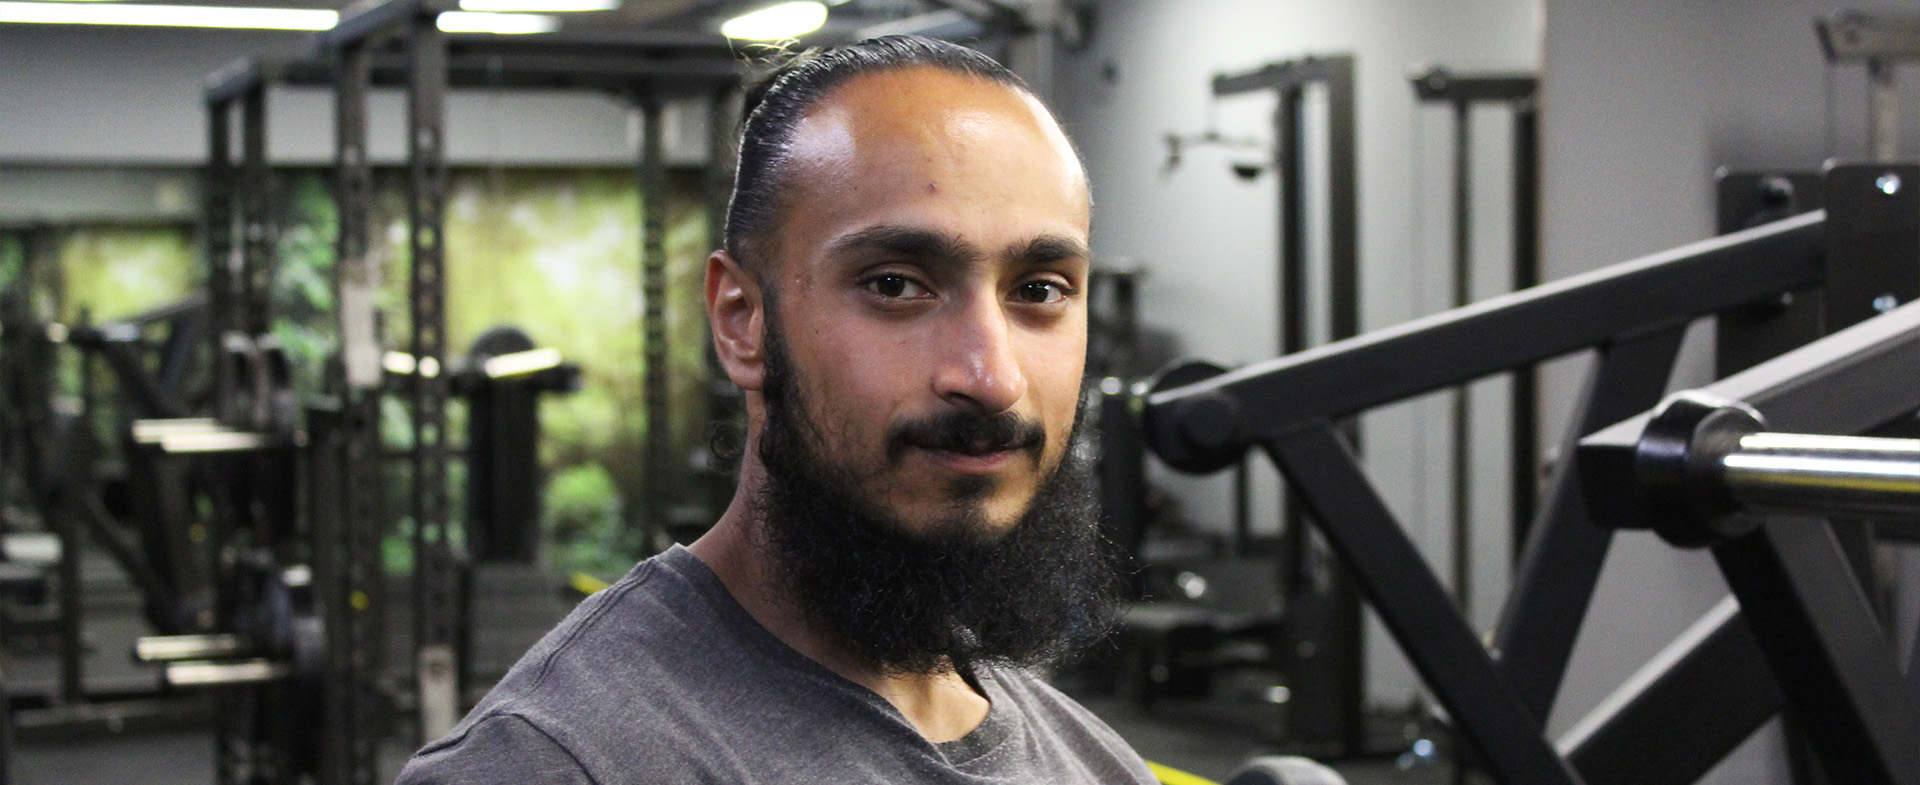 Indi Rajpal Studio Personal trainer at the Cut Gym London